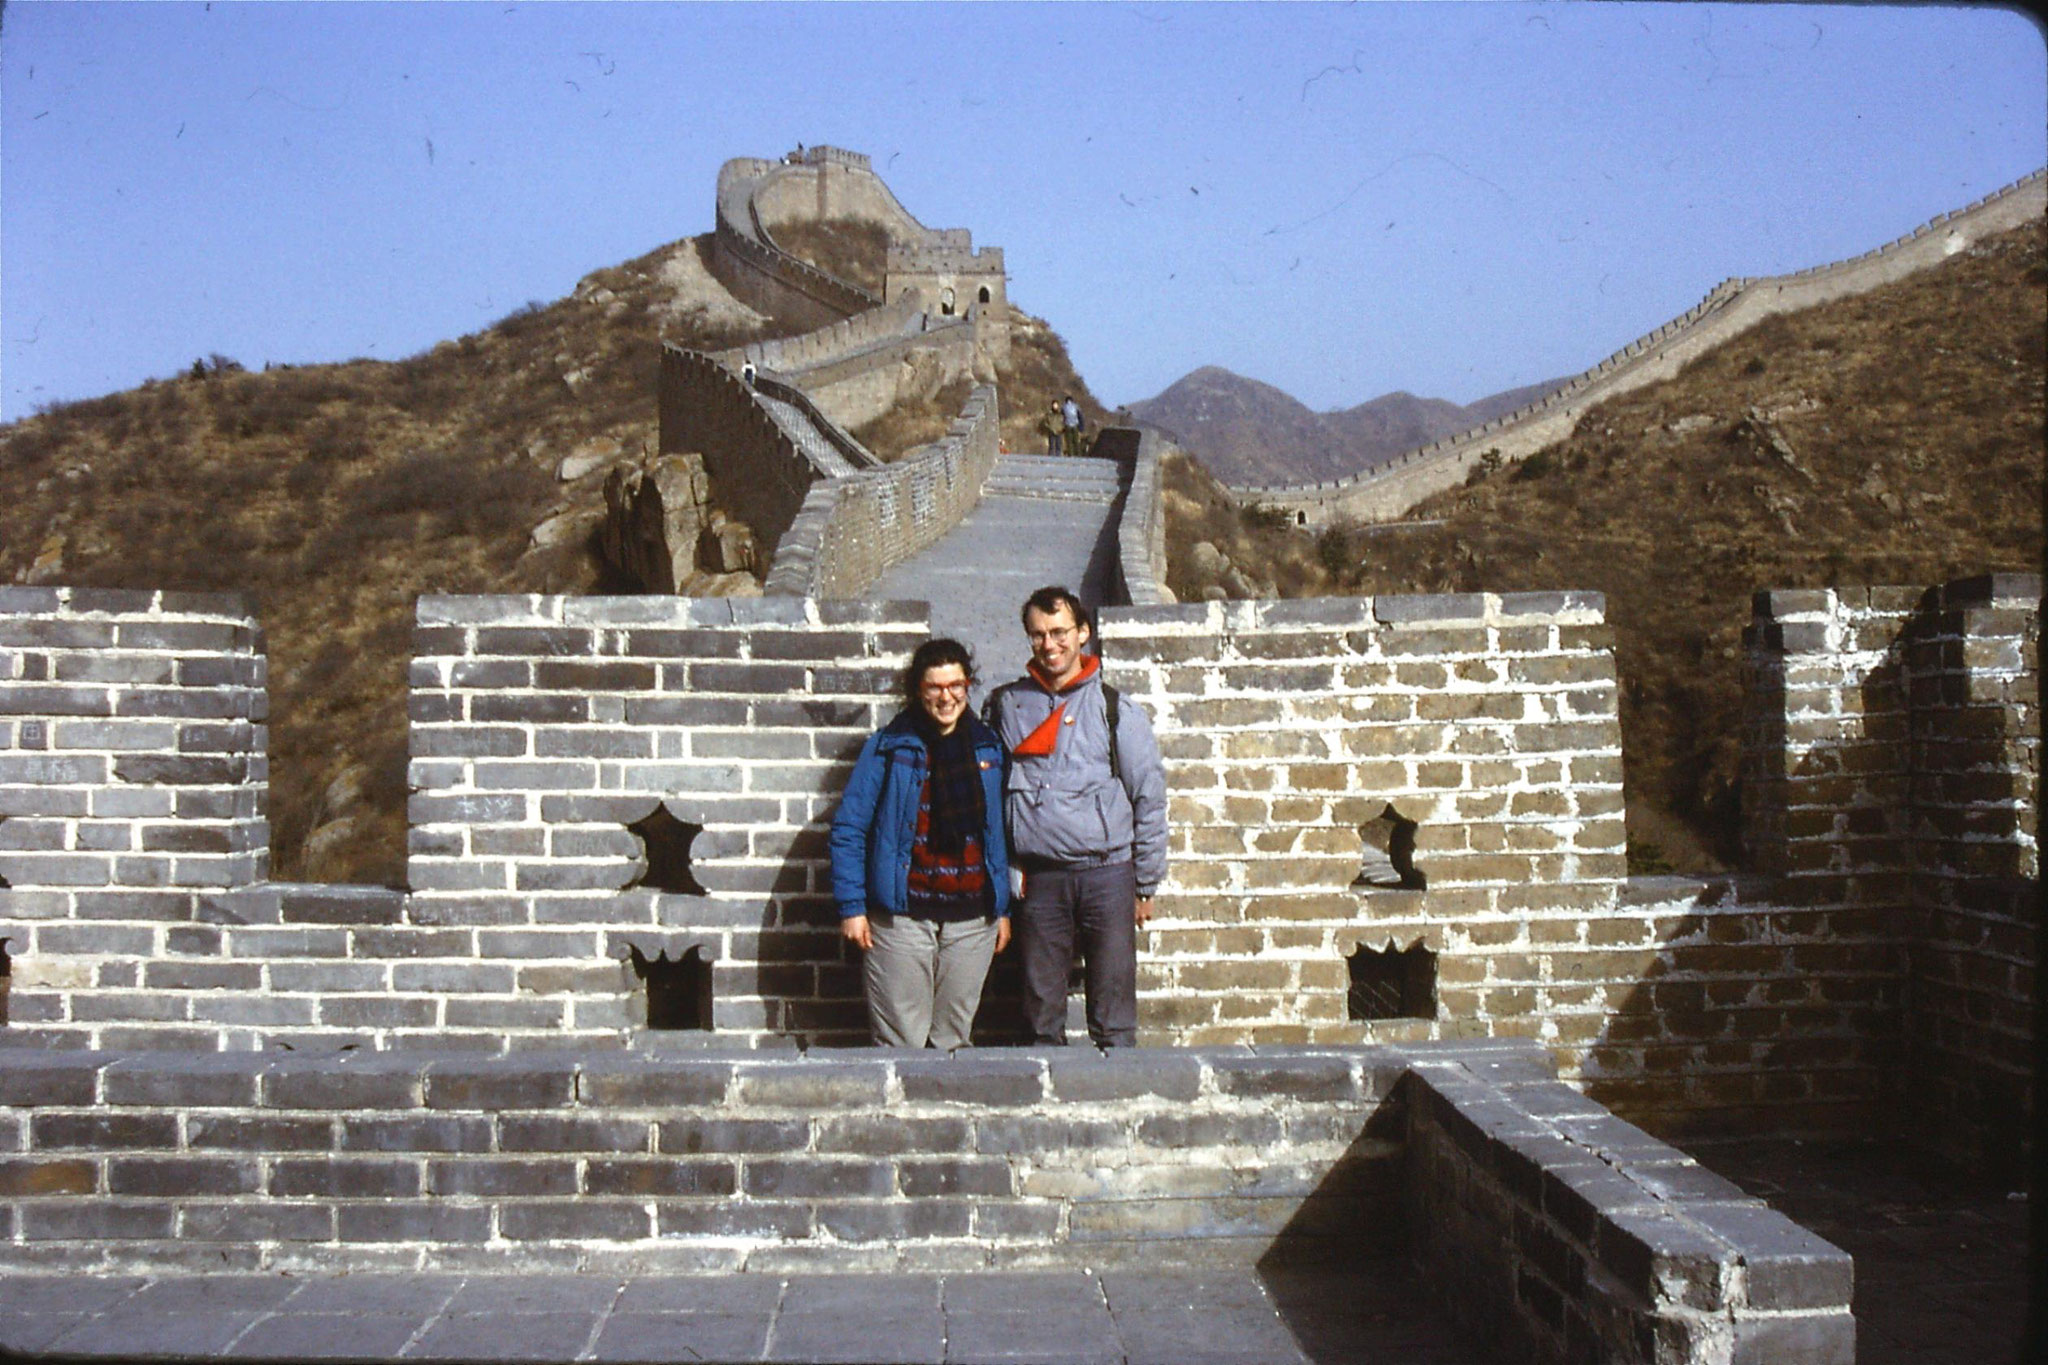 12/11/1988: 5: Great Wall at Badaling